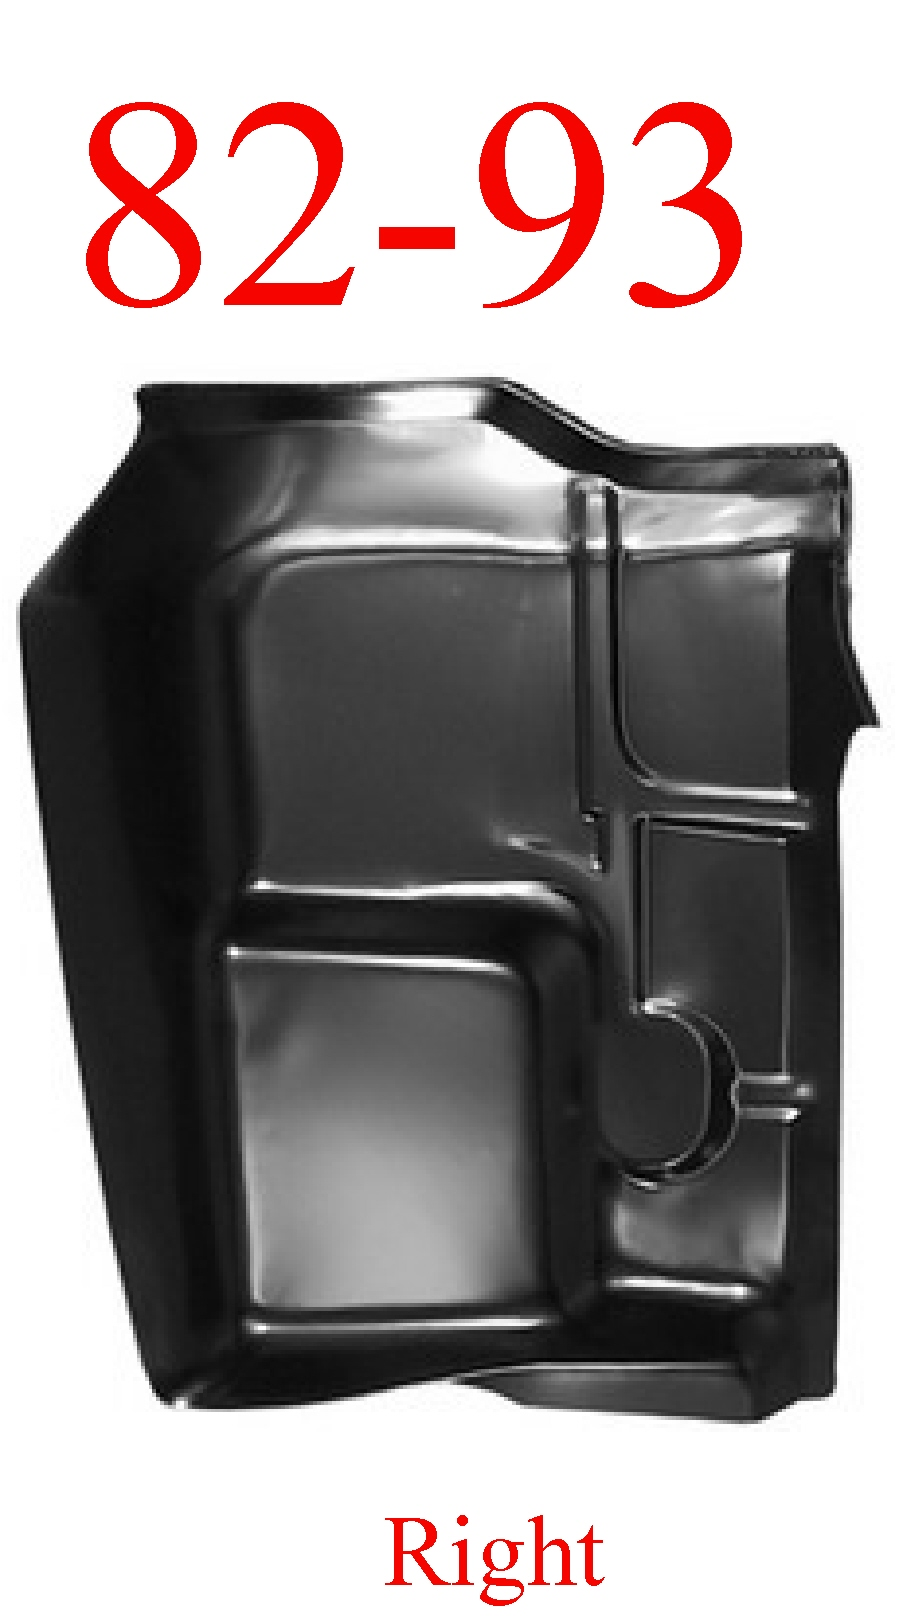 82-93 Chevy S10 Right Front Cab Floor Pan, MrTailLight com Online Store